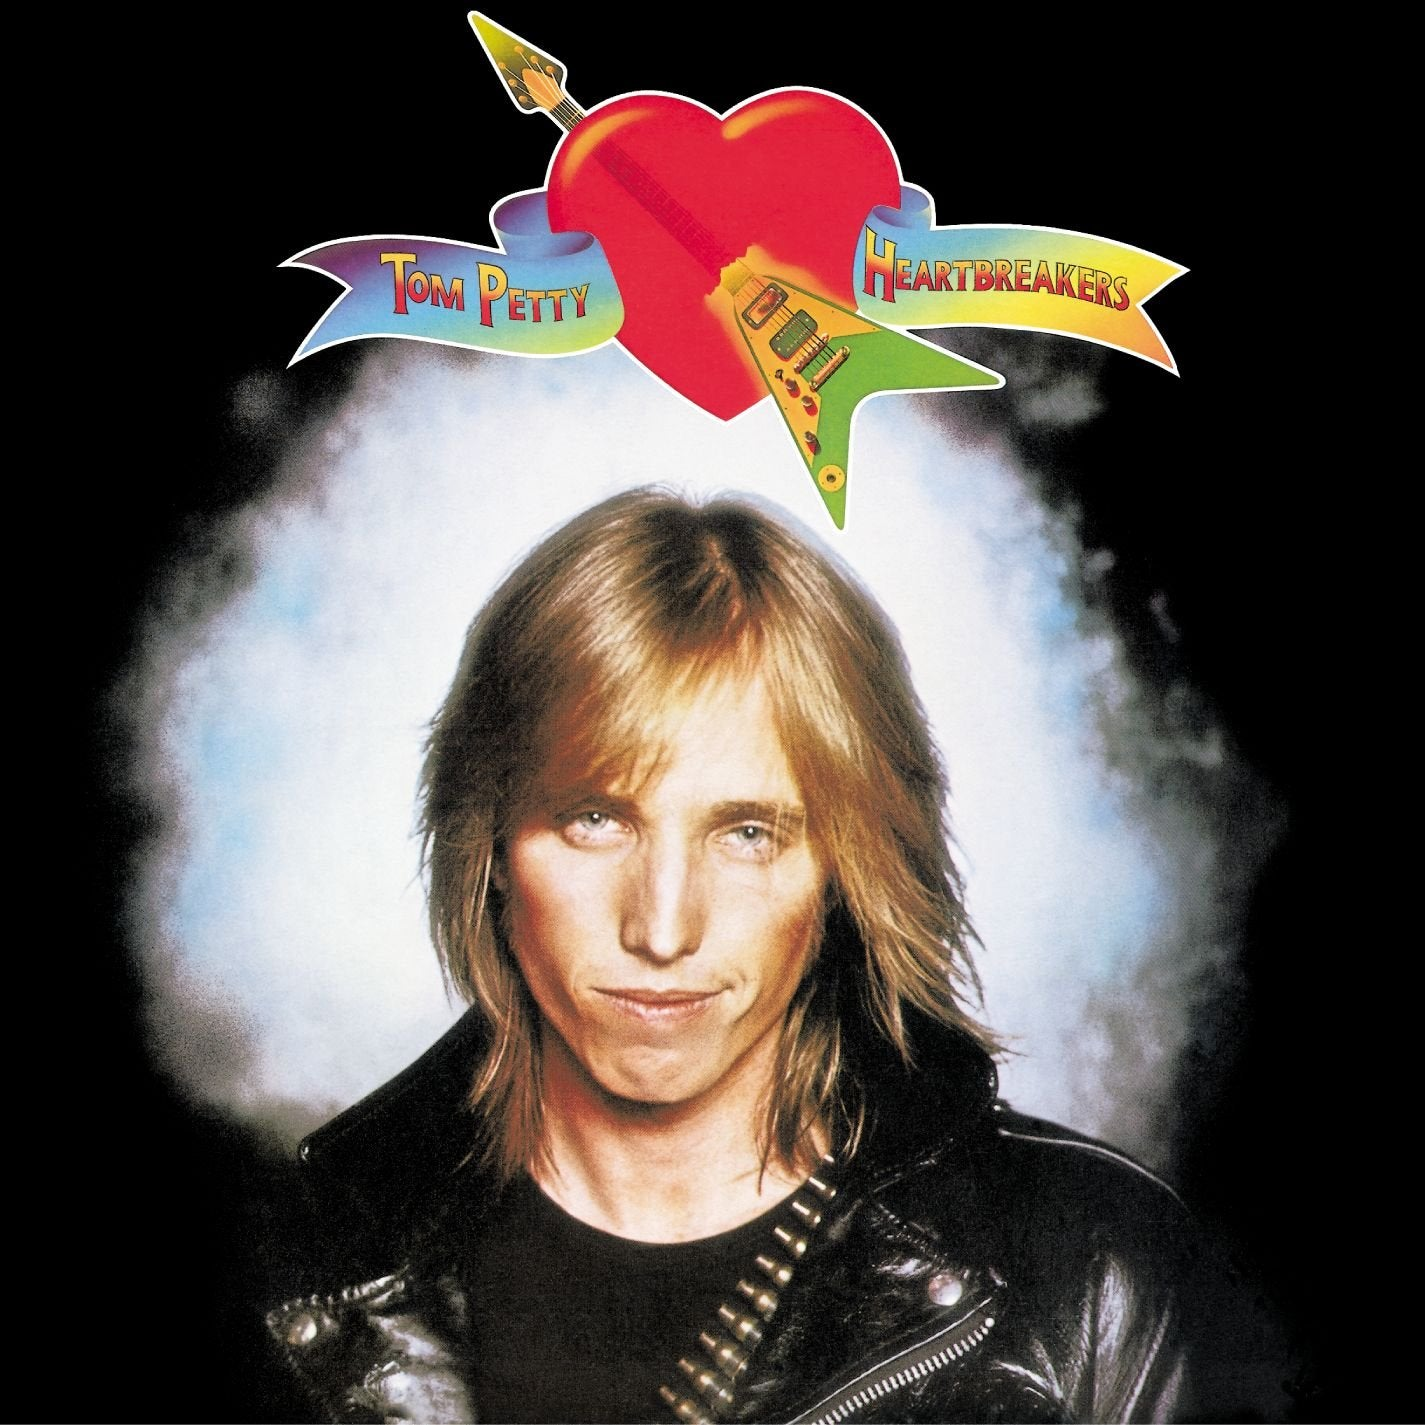 Tom Petty & The Heartbreakers - Tom Petty & The Heartbreakers LP